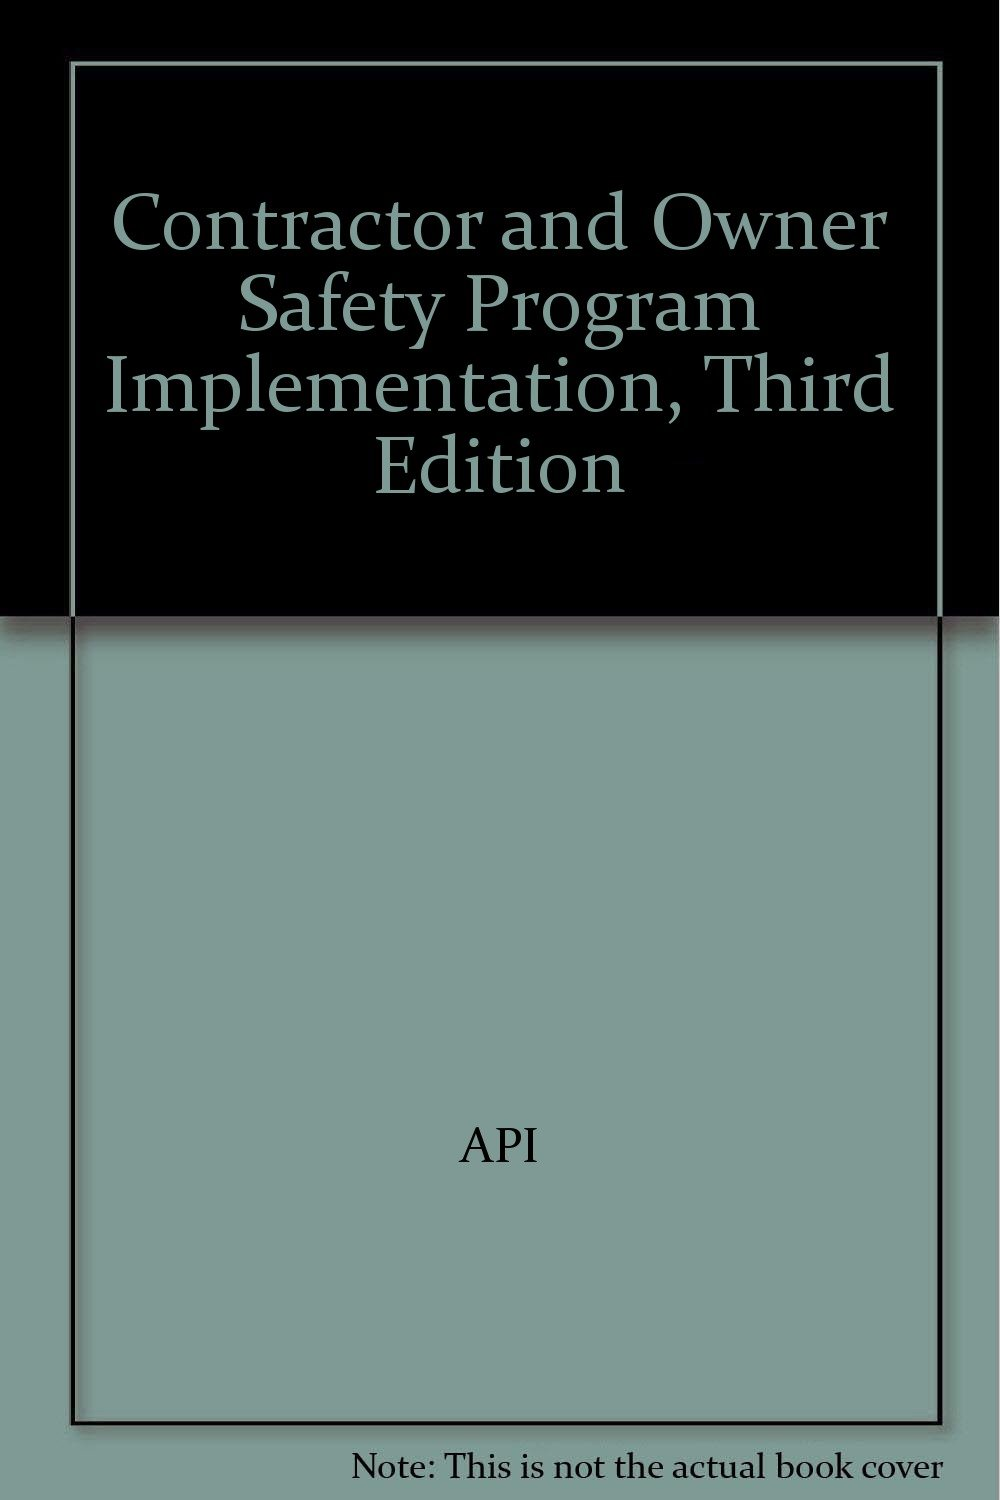 Contractor and Owner Safety Program Implementation, Third Edition PDF